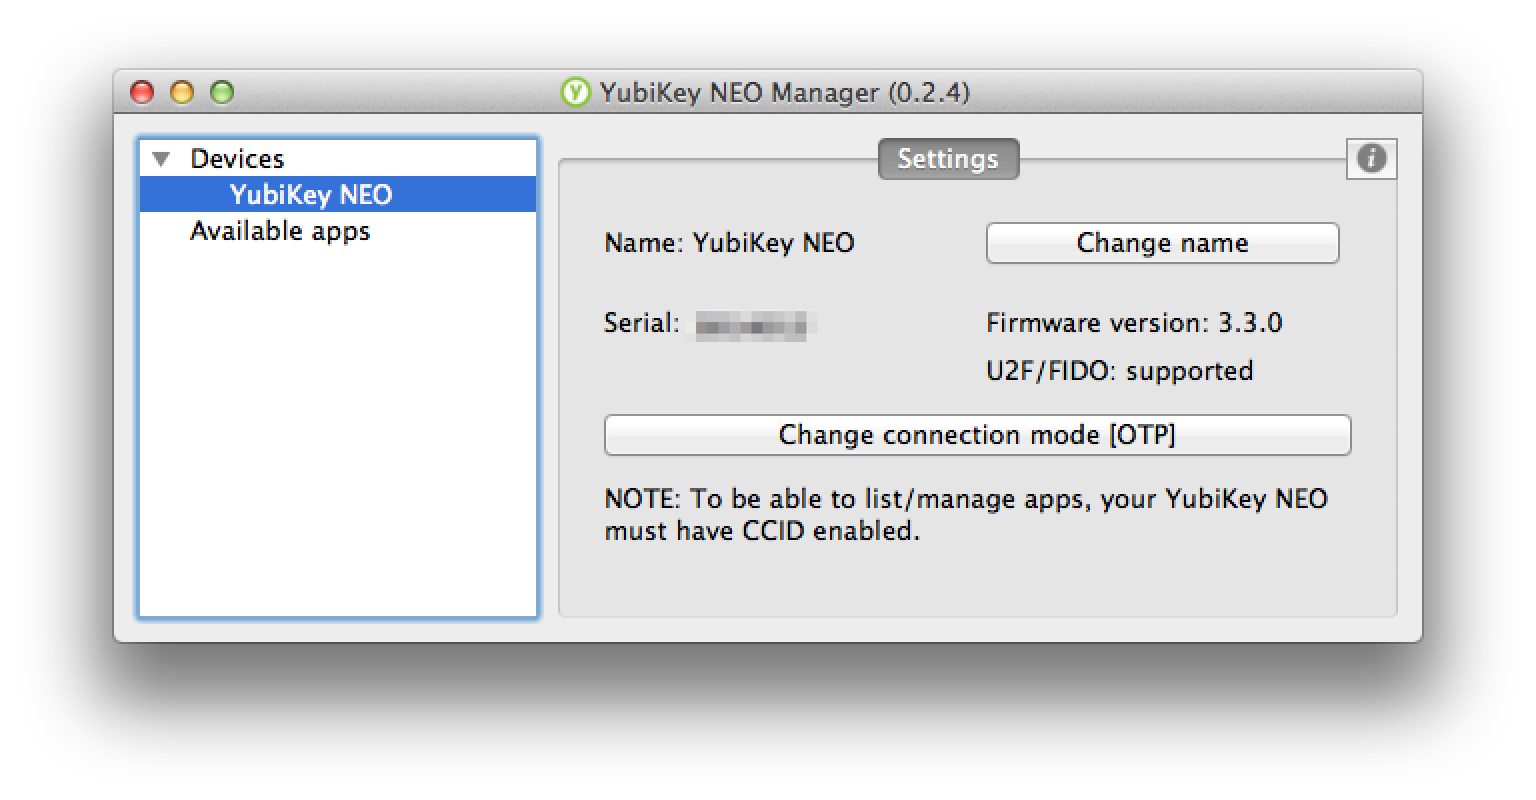 Yubikey Neo Manager main screen